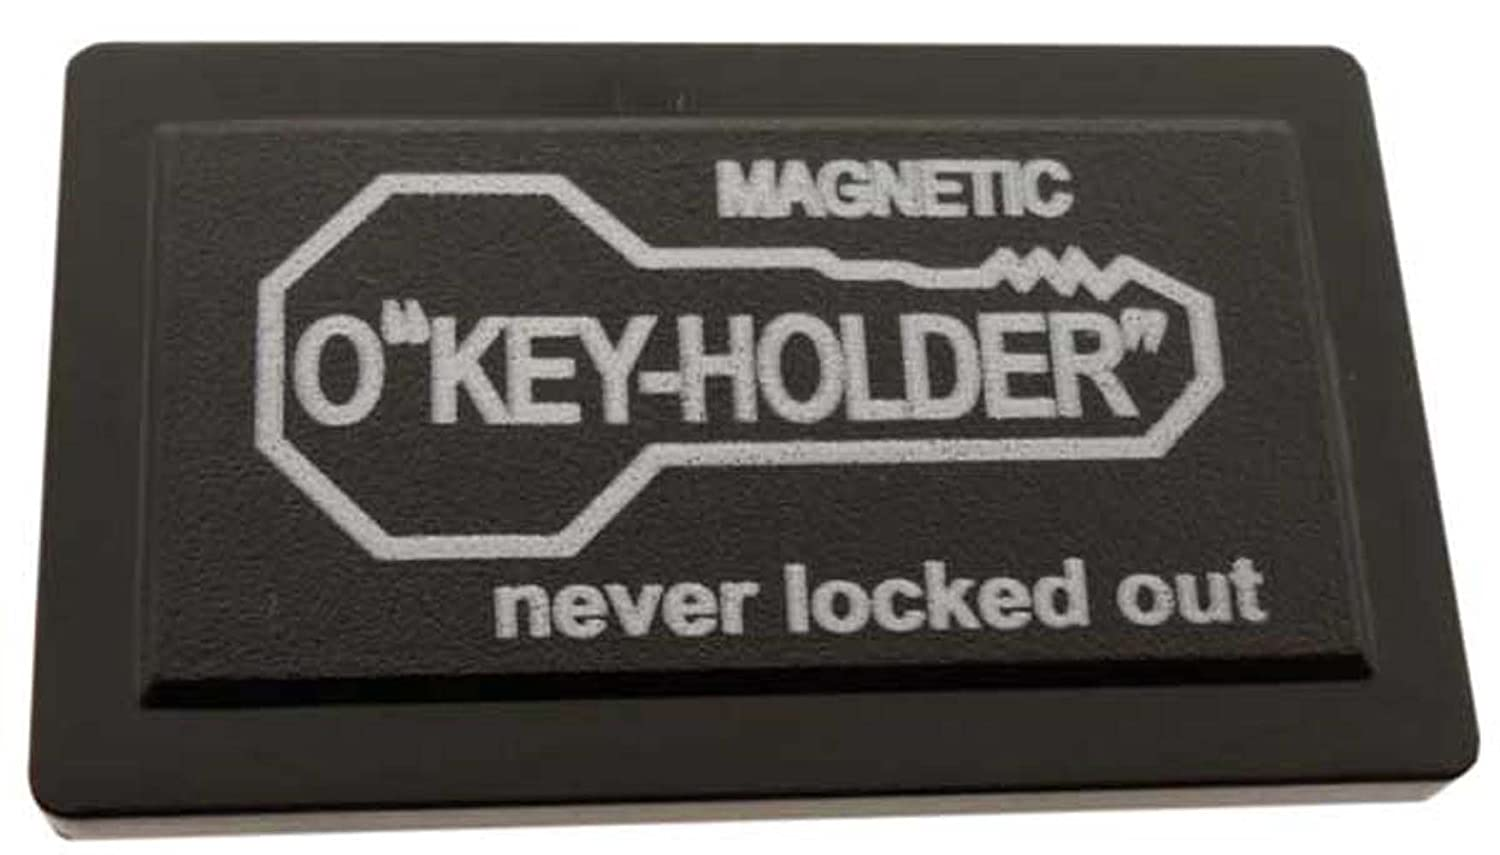 ToolUSA Magnetic Key Holder With Sliding Lid: TA-17298-Z02 : ( Pack of 2 Pcs. )